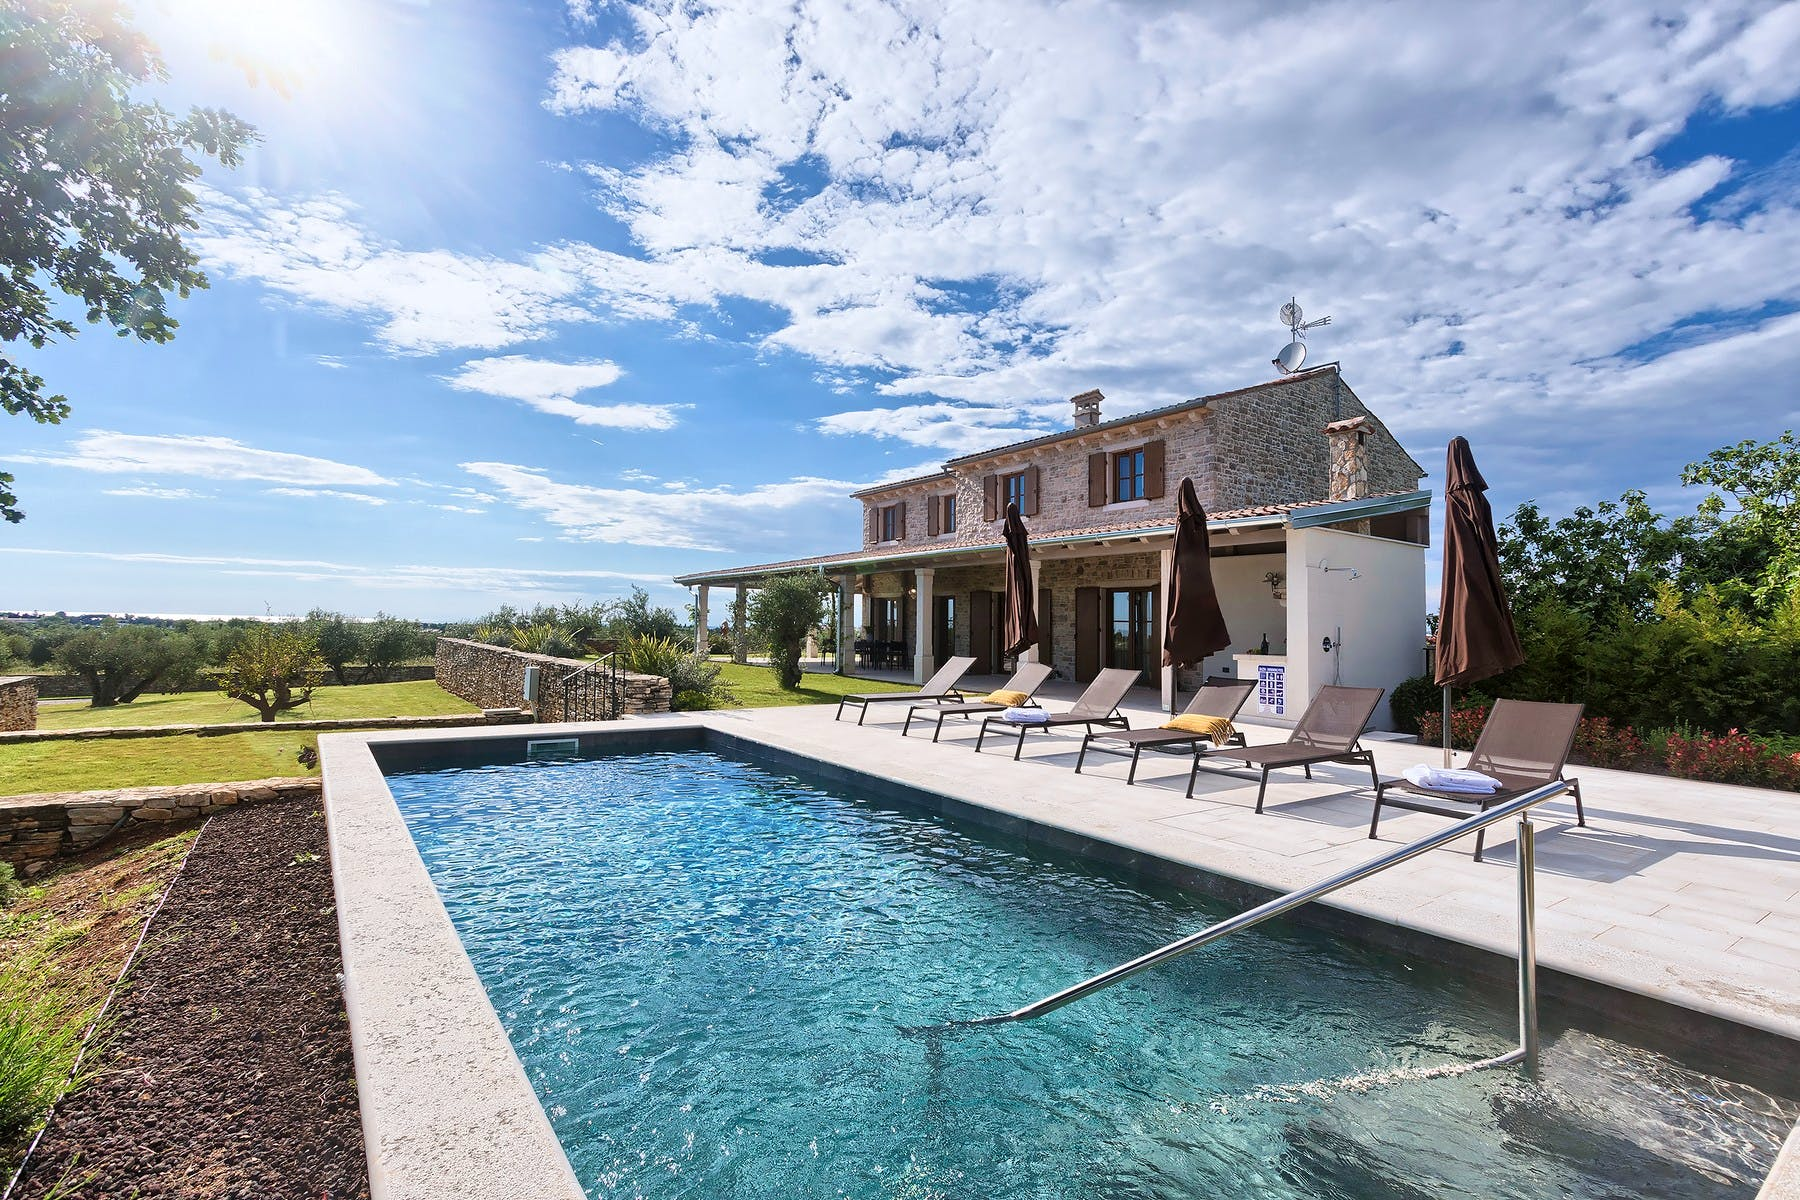 Rustic style villa with pool